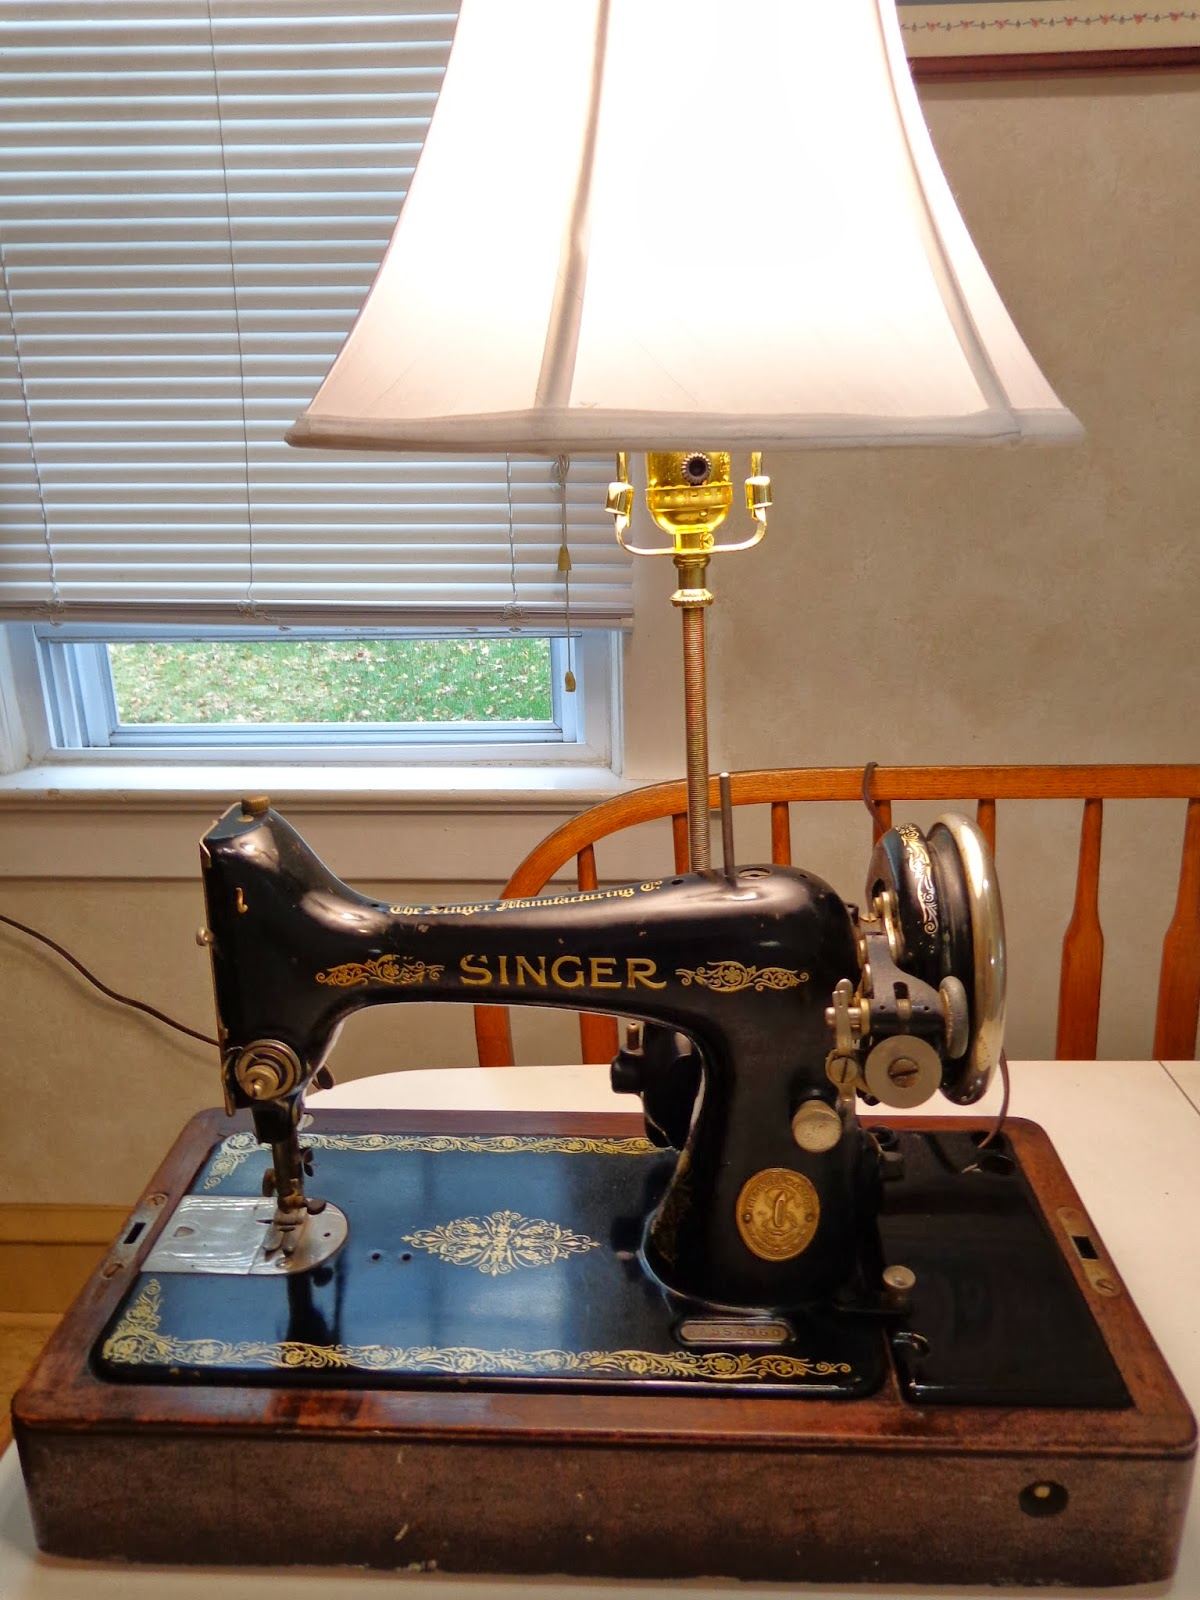 Simply Devine: A Vintage Singer Sewing Machine Gets a New Life